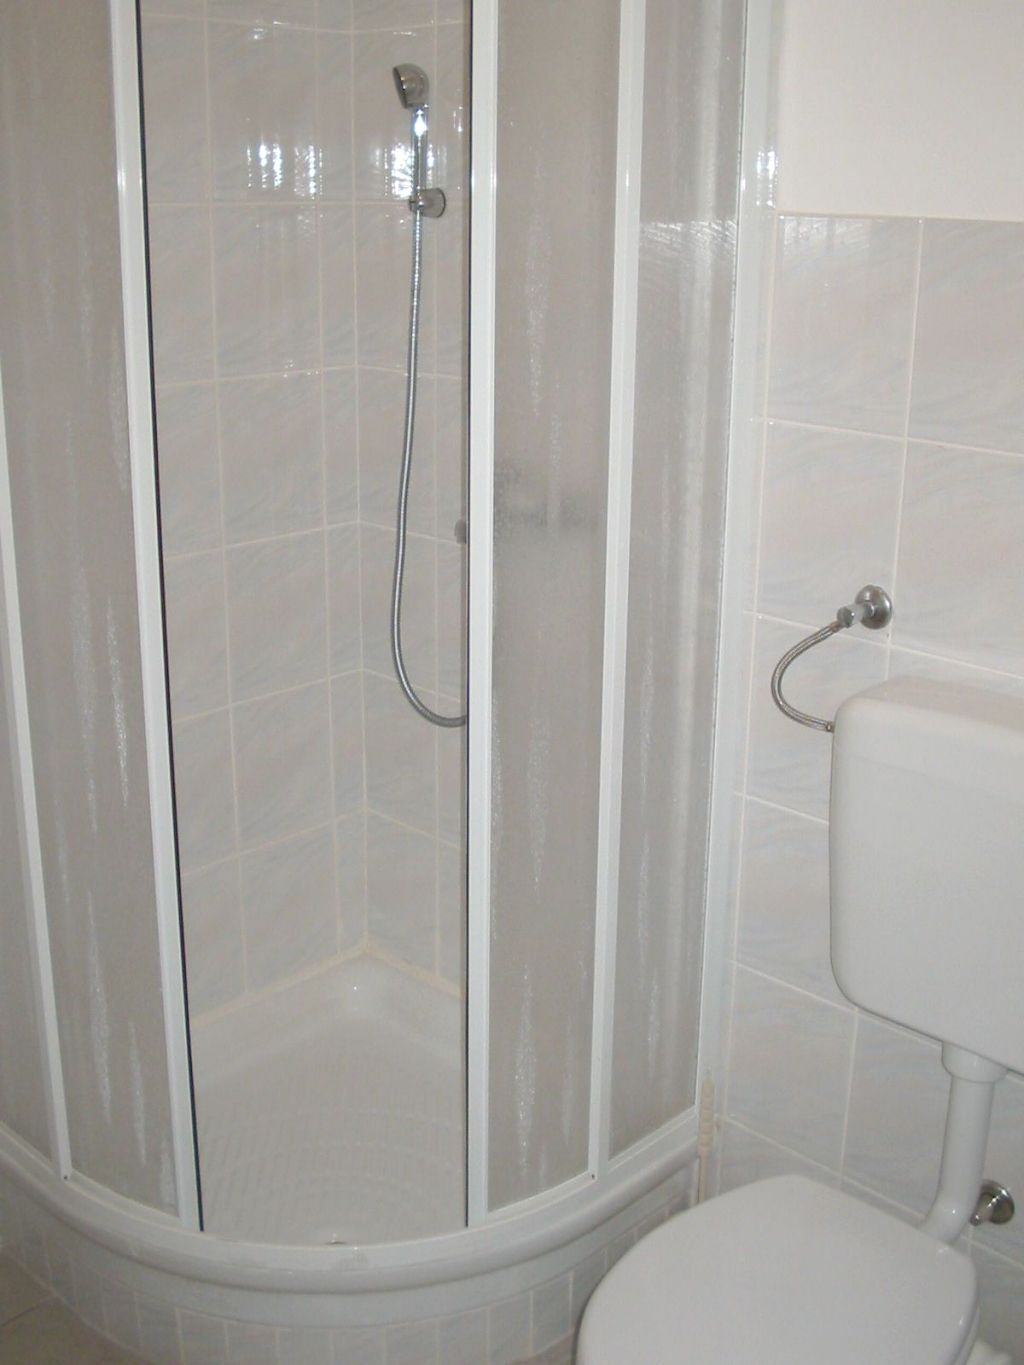 Novalja,Croatia,1 Bedroom Bedrooms,1 BathroomBathrooms,Apartment,1021